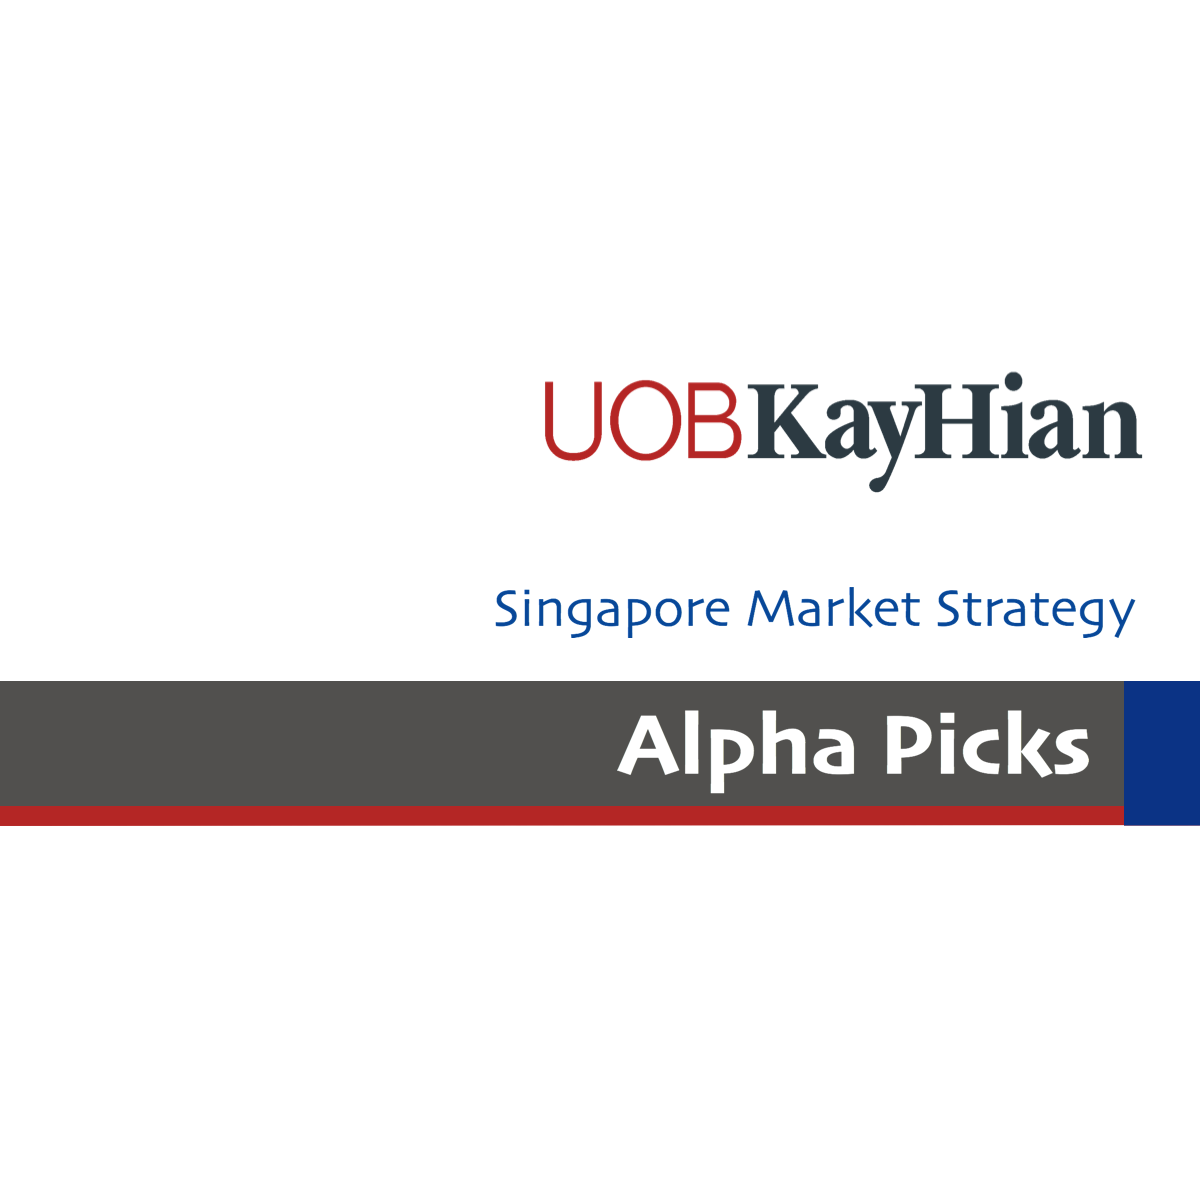 Singapore Stock Alpha Picks (September 2018) - UOB Kay Hian Research 2018-09-03: Bracing For Higher Volatility Ahead